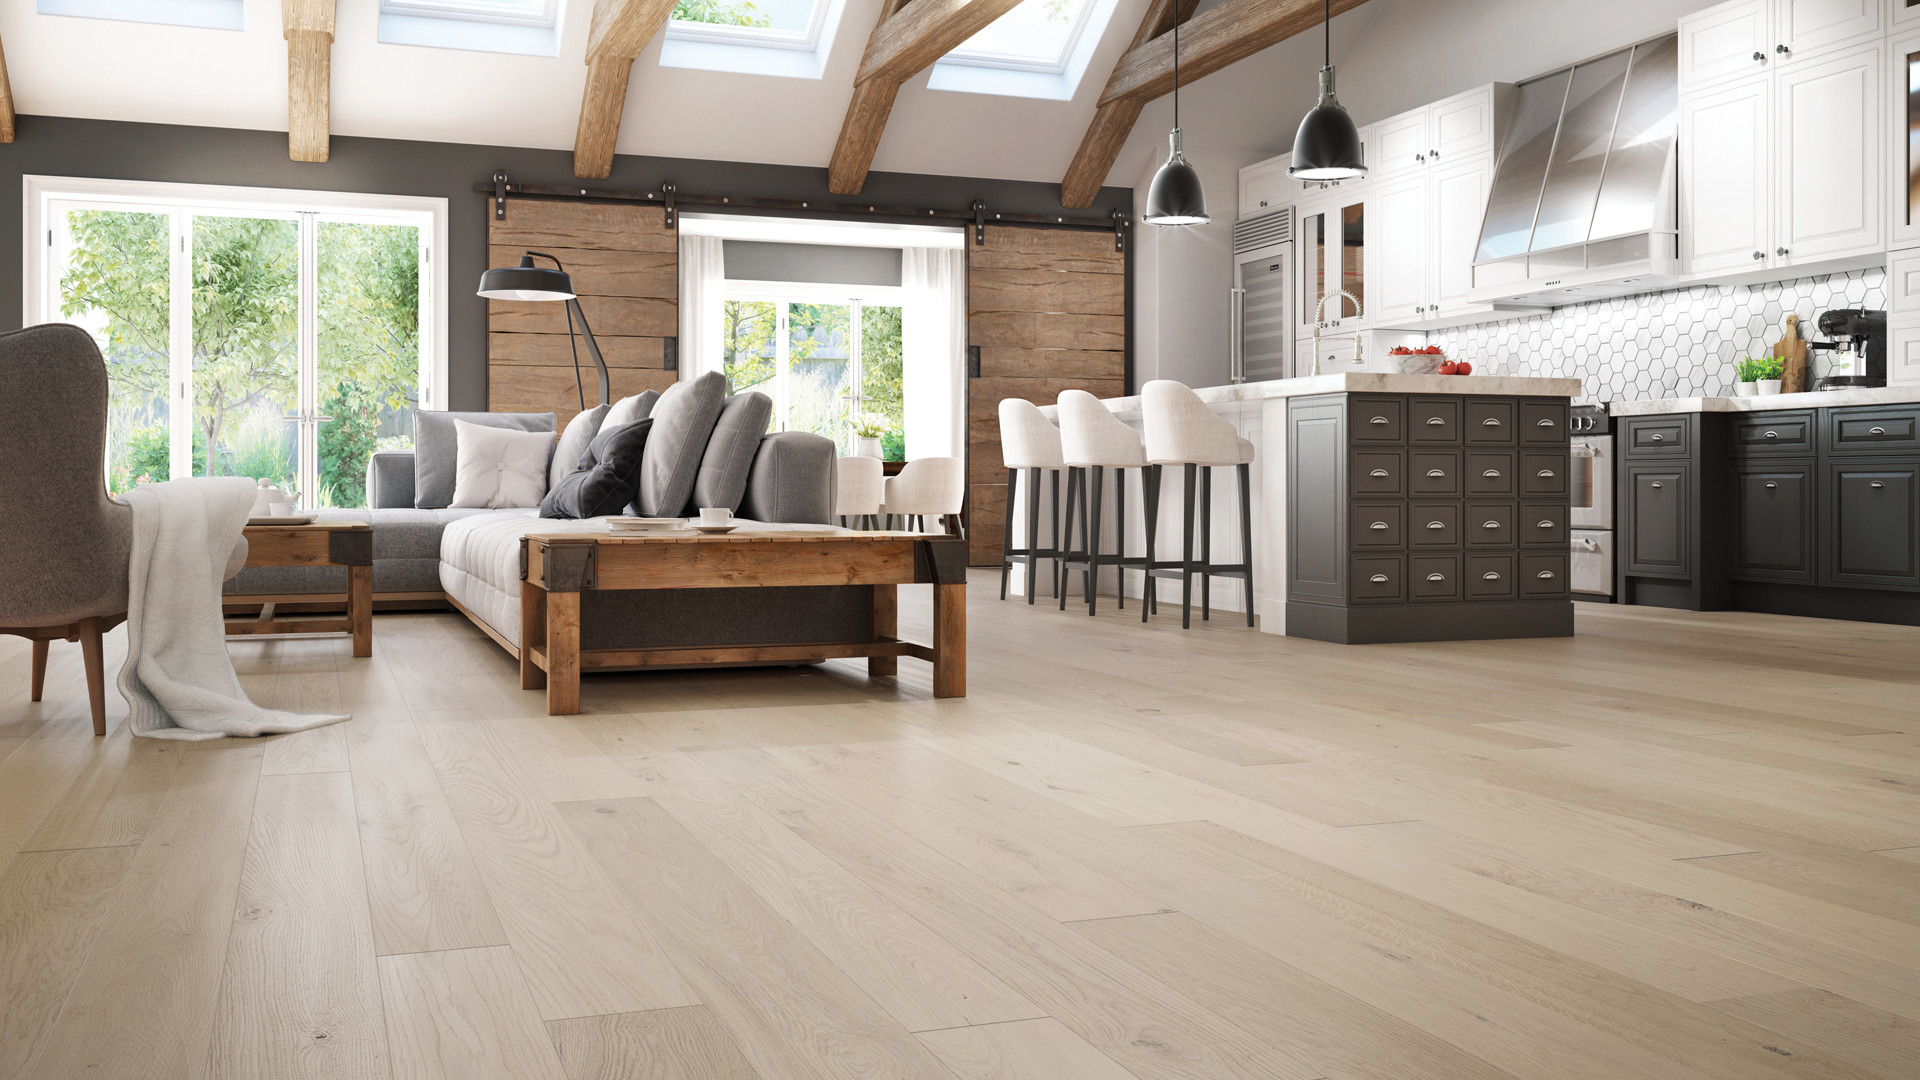 dark hardwood floor colors of 4 latest hardwood flooring trends of 2018 lauzon flooring intended for this technology brings your hardwood floors and well being to a new level by improving indoor air quality by up to 85 and decomposing up to 99 6 of